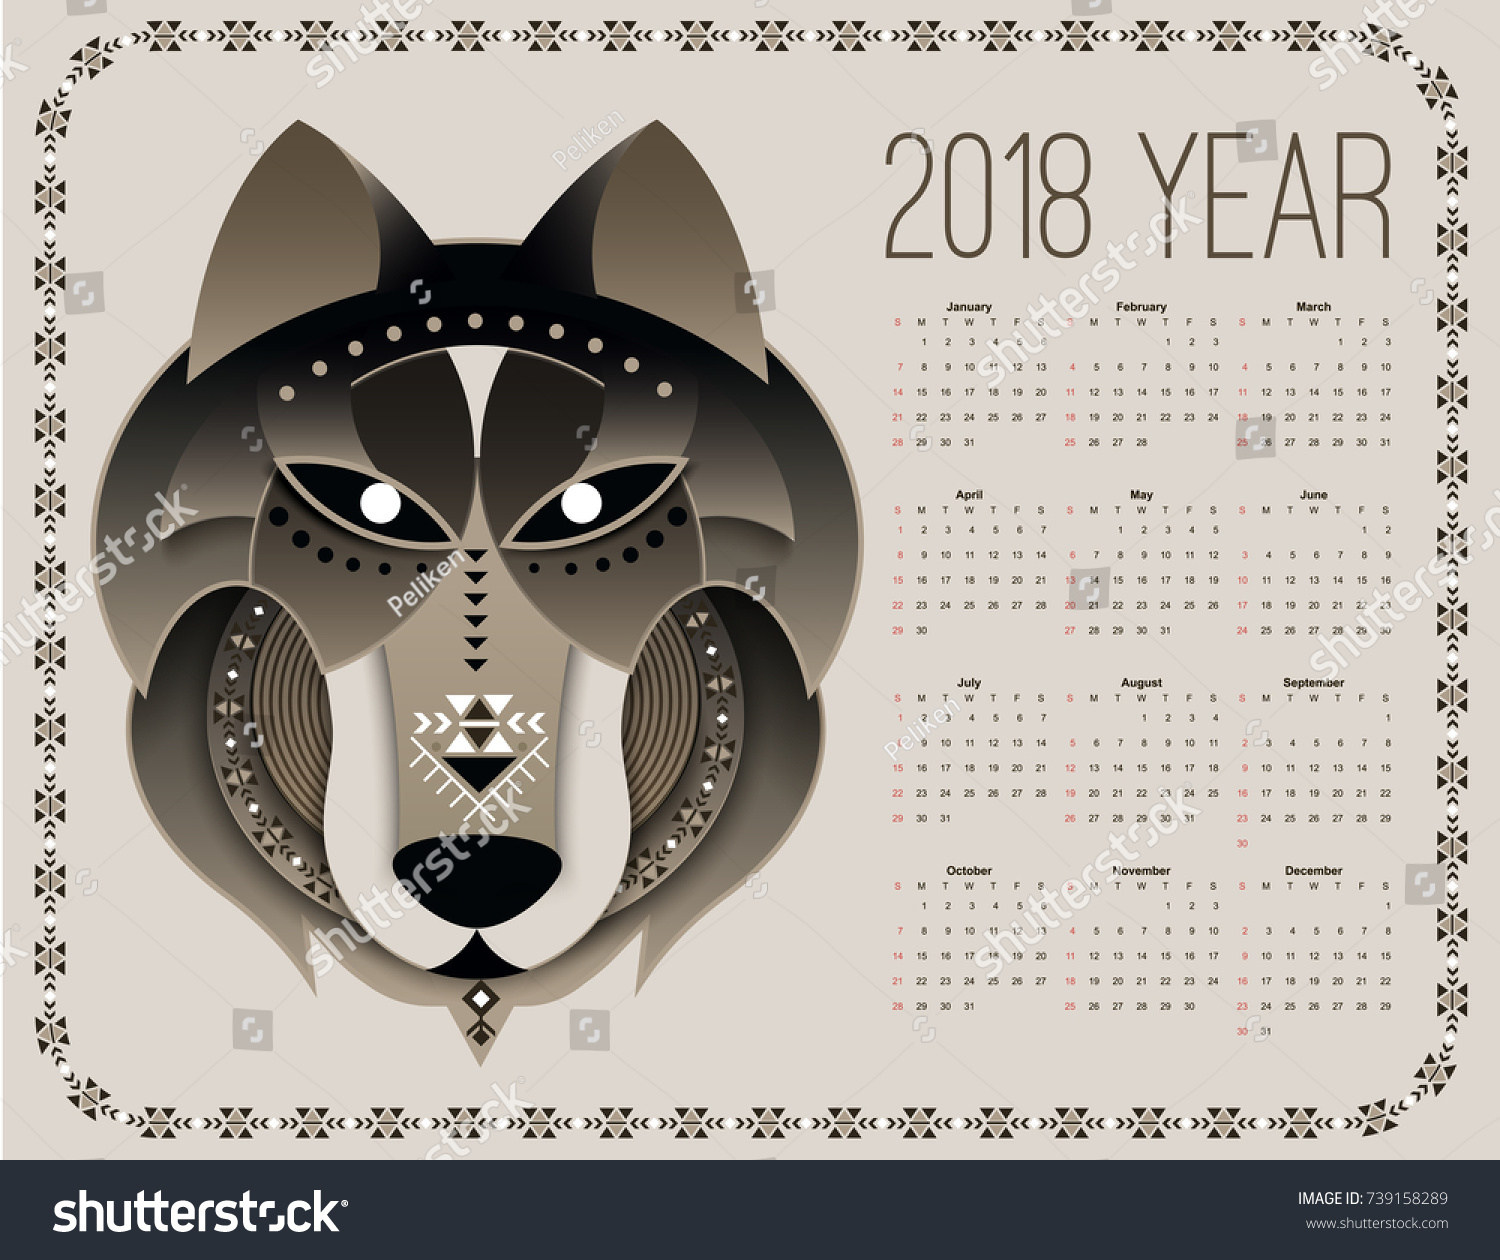 Calendar Head Design : Dog calendar chinese new year Стоковое Векторное